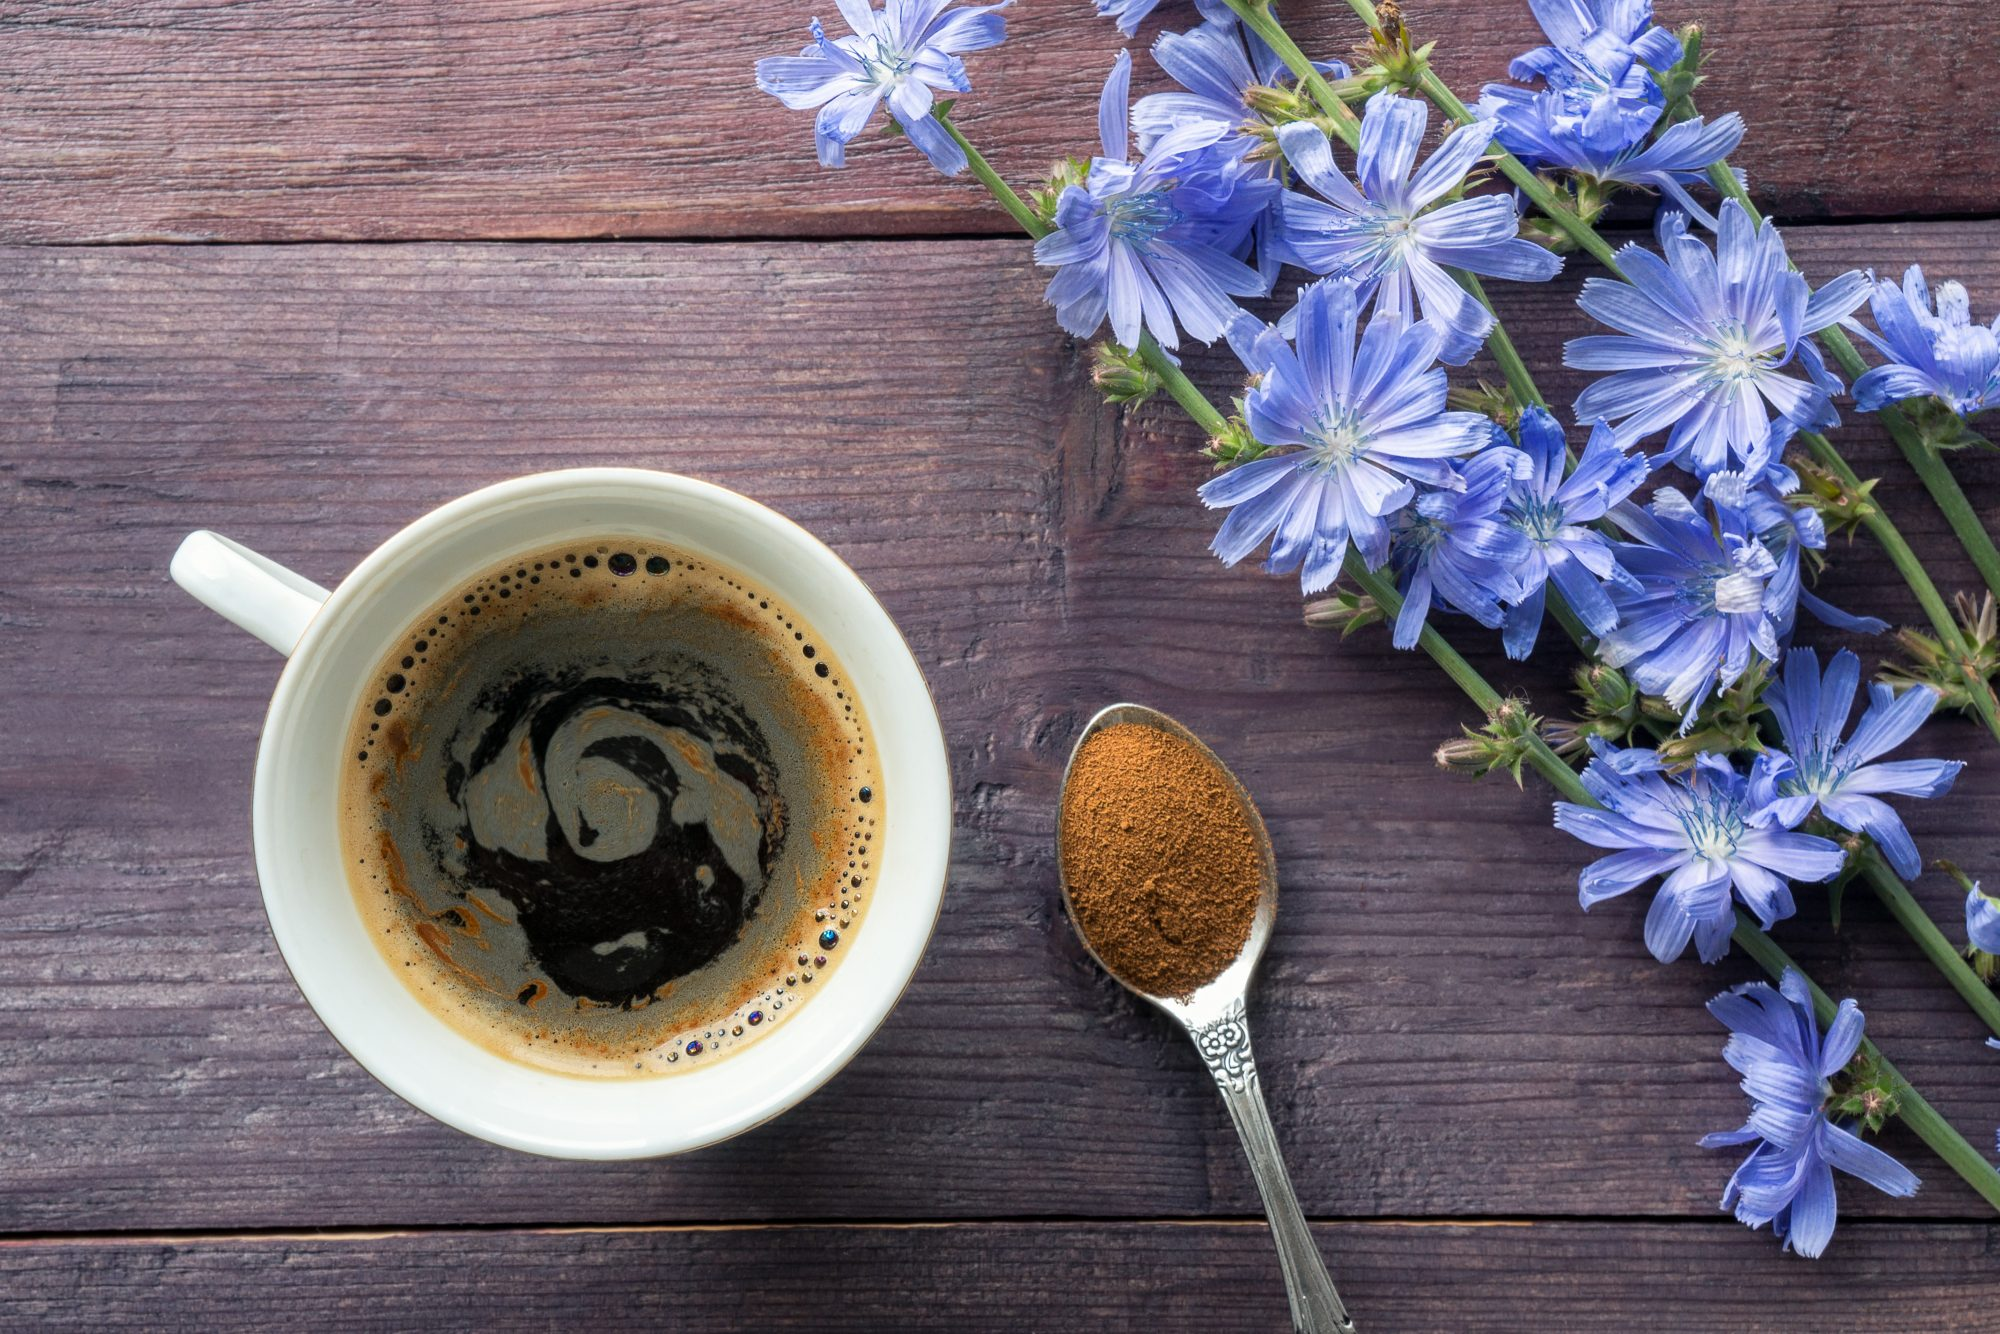 Chicory drink with blue flowers